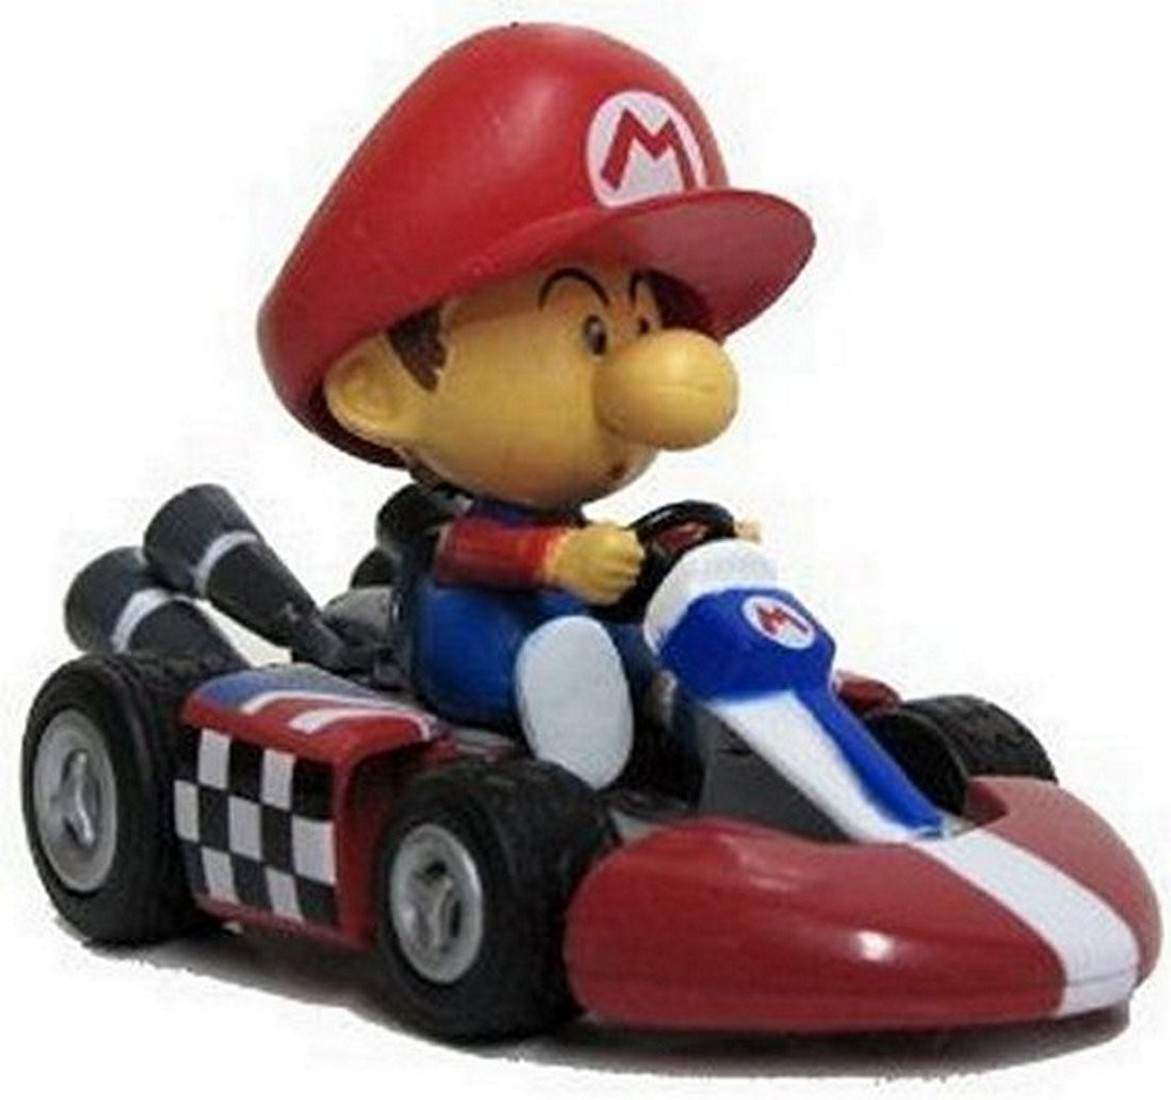 Nintendo mario kart wii pull back action toy race car 3 for Coupe miroir mario kart wii